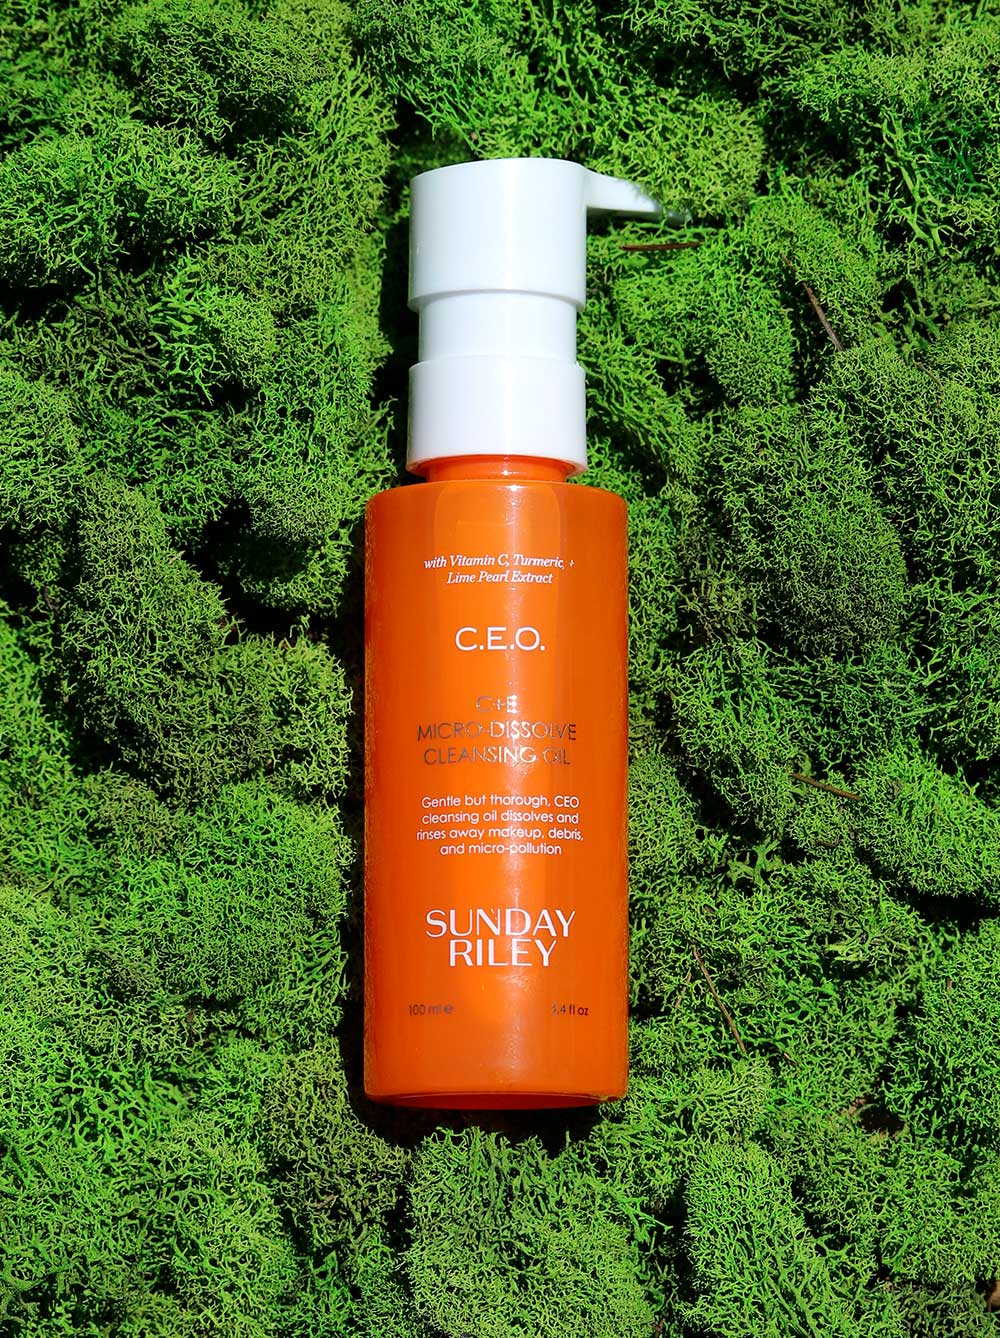 sunday riley ceo cleansing oil